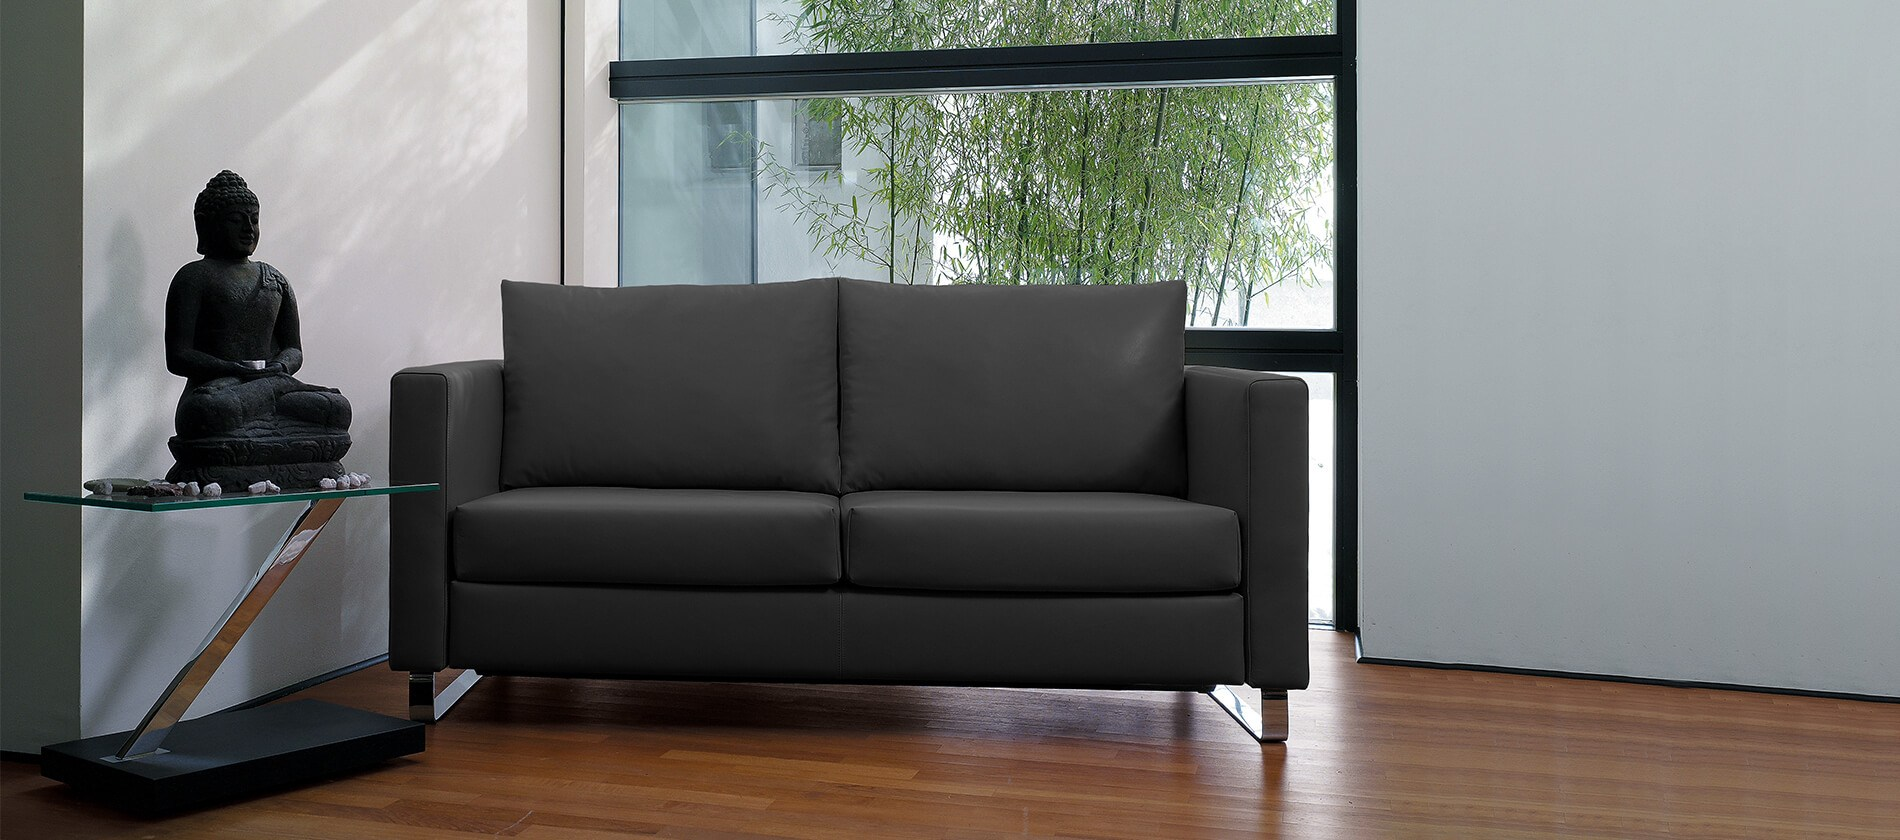 franz fertig schlafsofa intro das klassische sofa mit. Black Bedroom Furniture Sets. Home Design Ideas